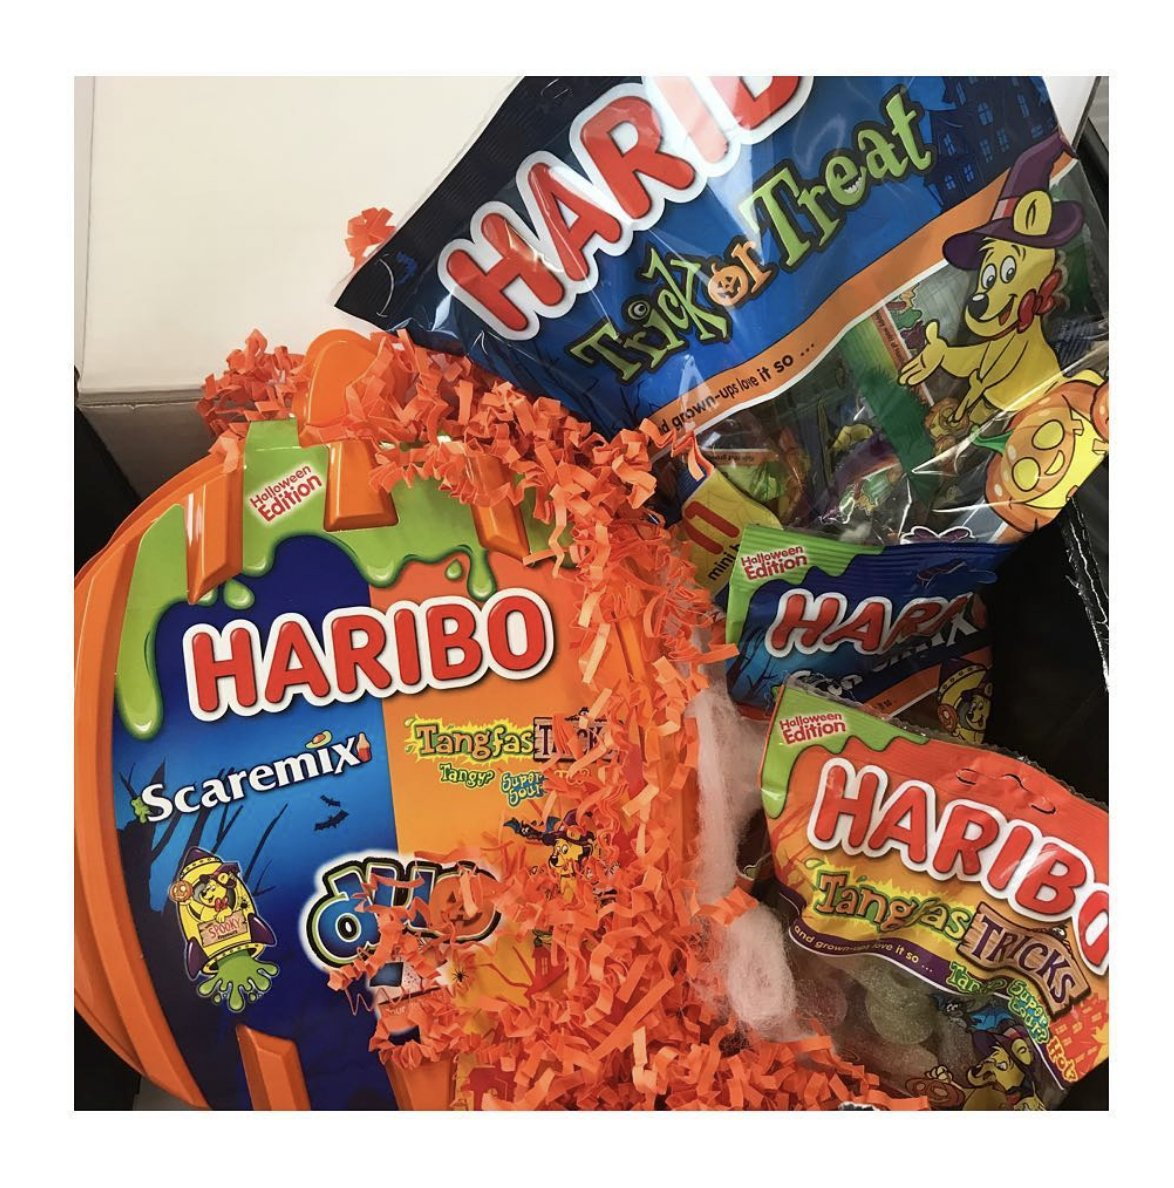 Monday blues? A truck-load of Halloween themed @OfficialHARIBO goodies will help...